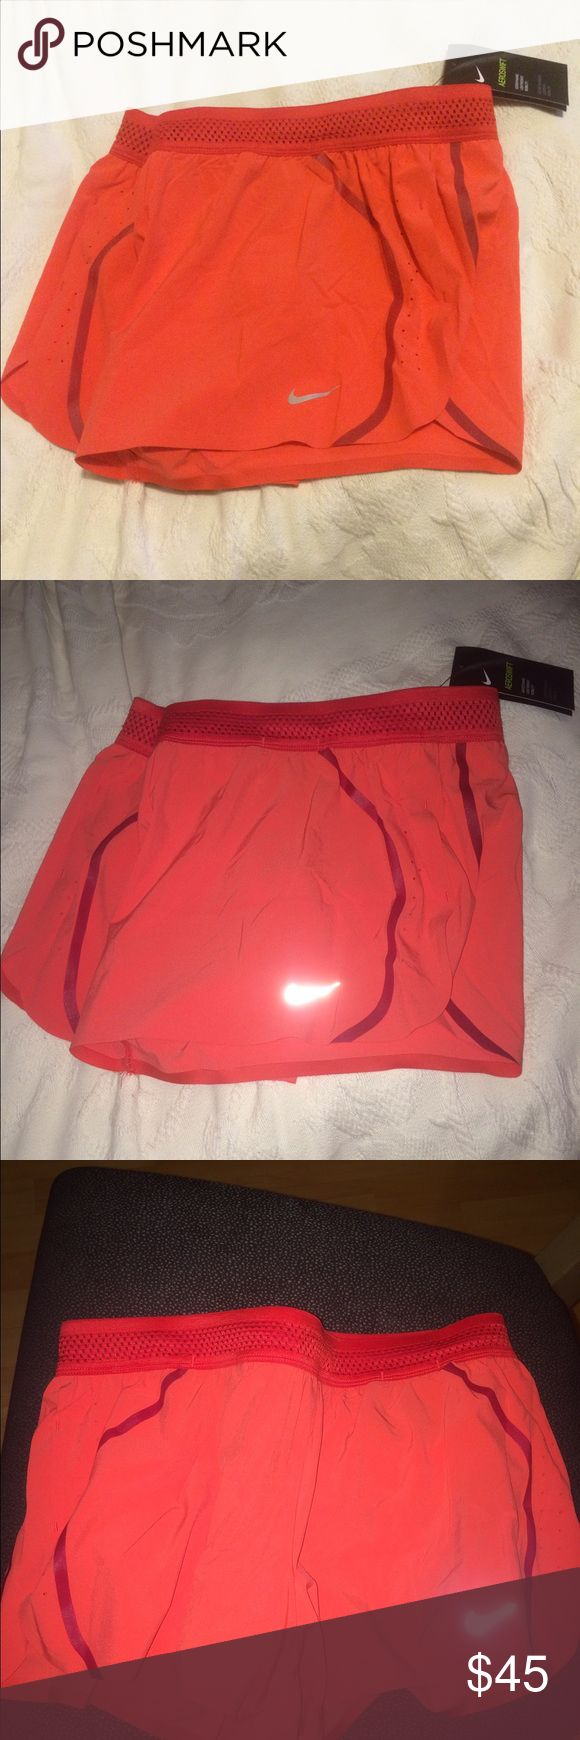 Nike shorts Nike Aeroswift shorts. Built in panty liner and two inner pockets(as shown) perfect for a key or Chapstick. Drawstring to adjust the waist. Coral color with a silver reflective Nike sign. Brand new with tags! Nike Shorts